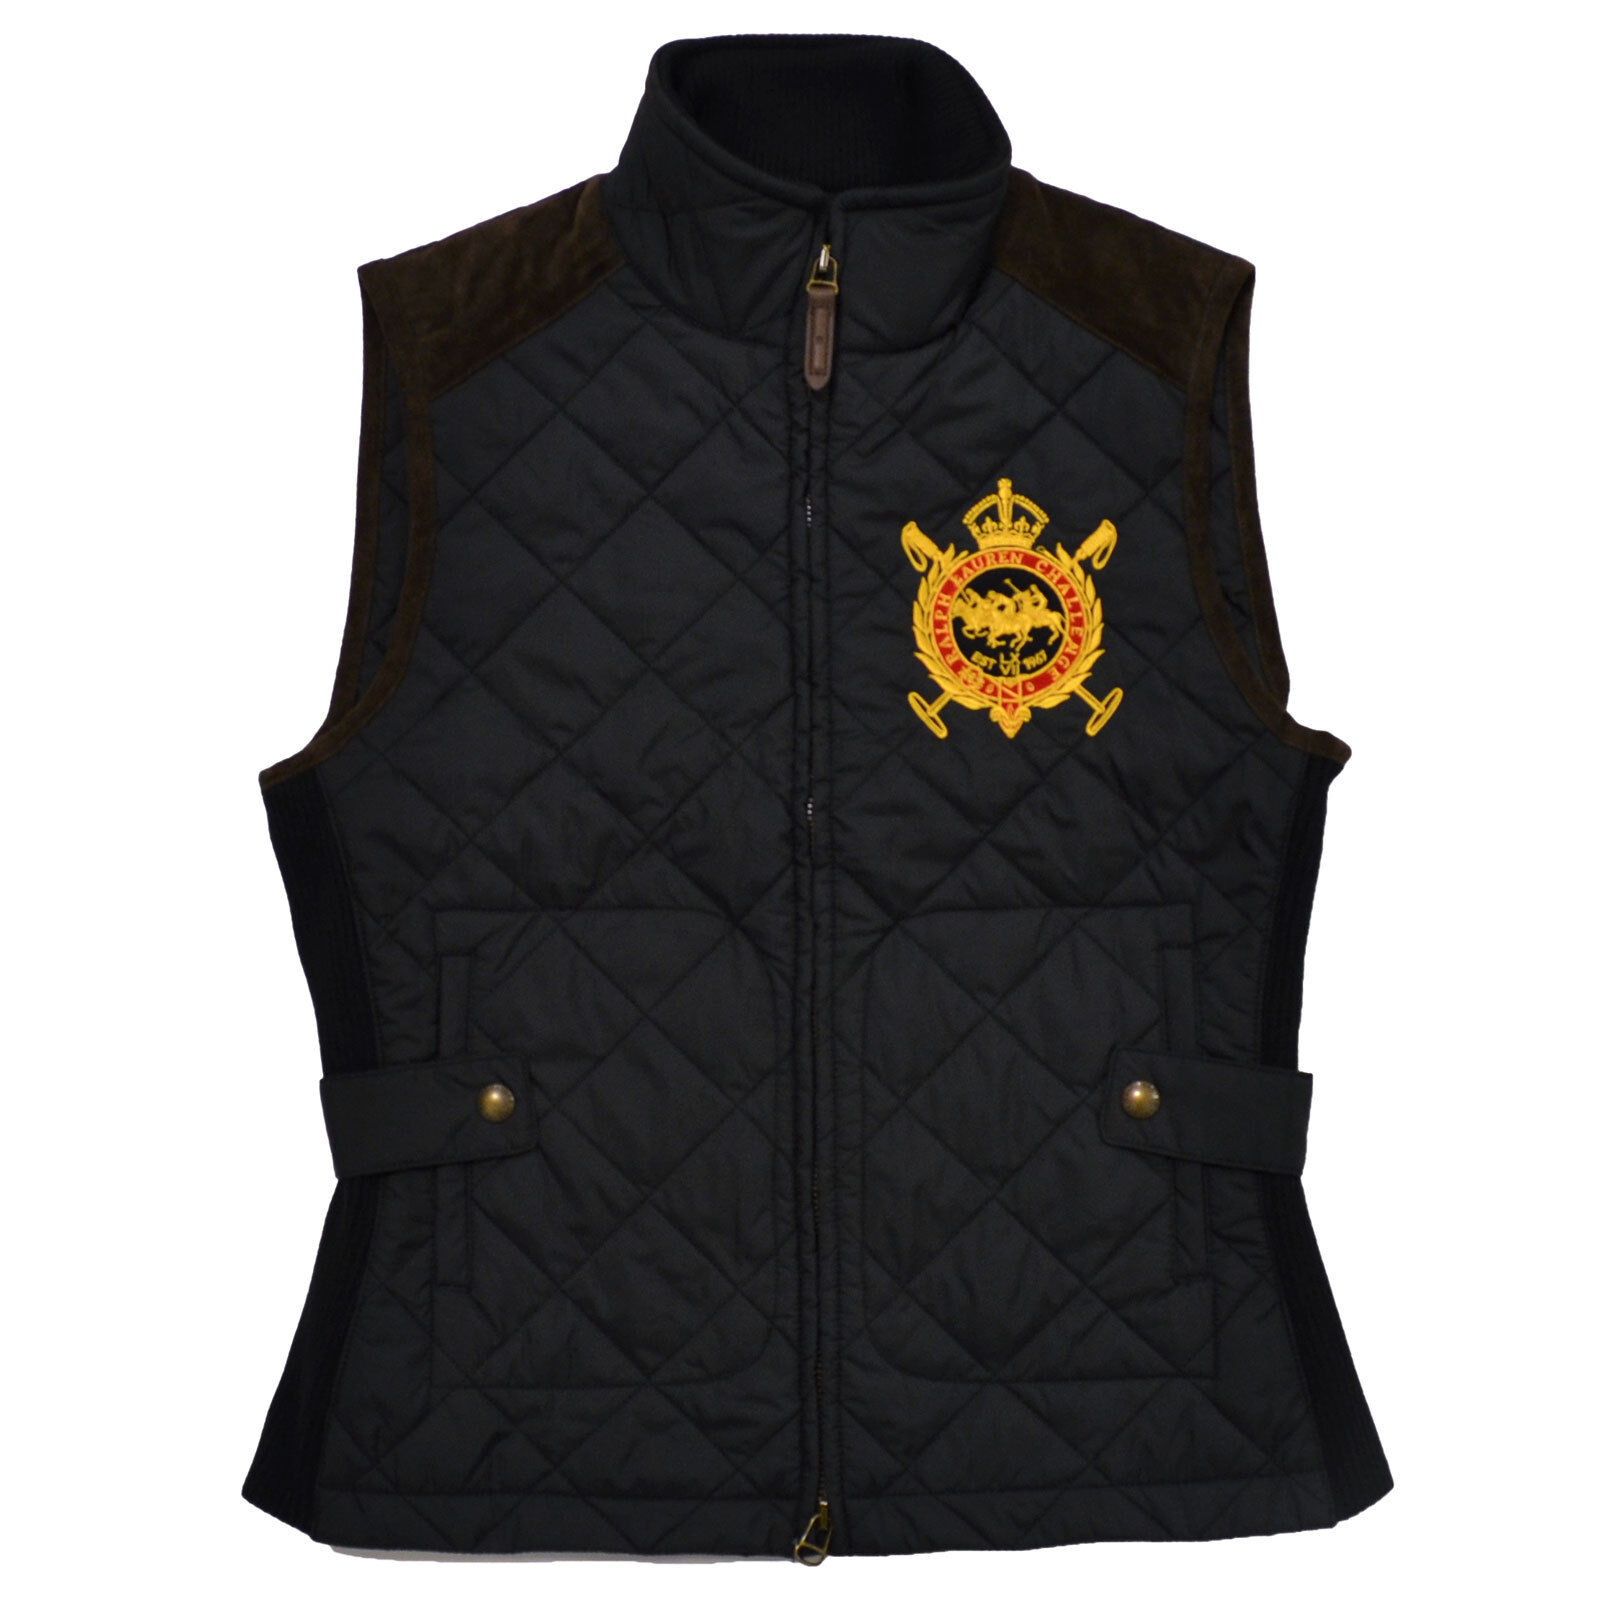 clothing orders womens on l product shoes back york women quilted puffer overstock marc quilt shipping black new vest large jacket knit s free over